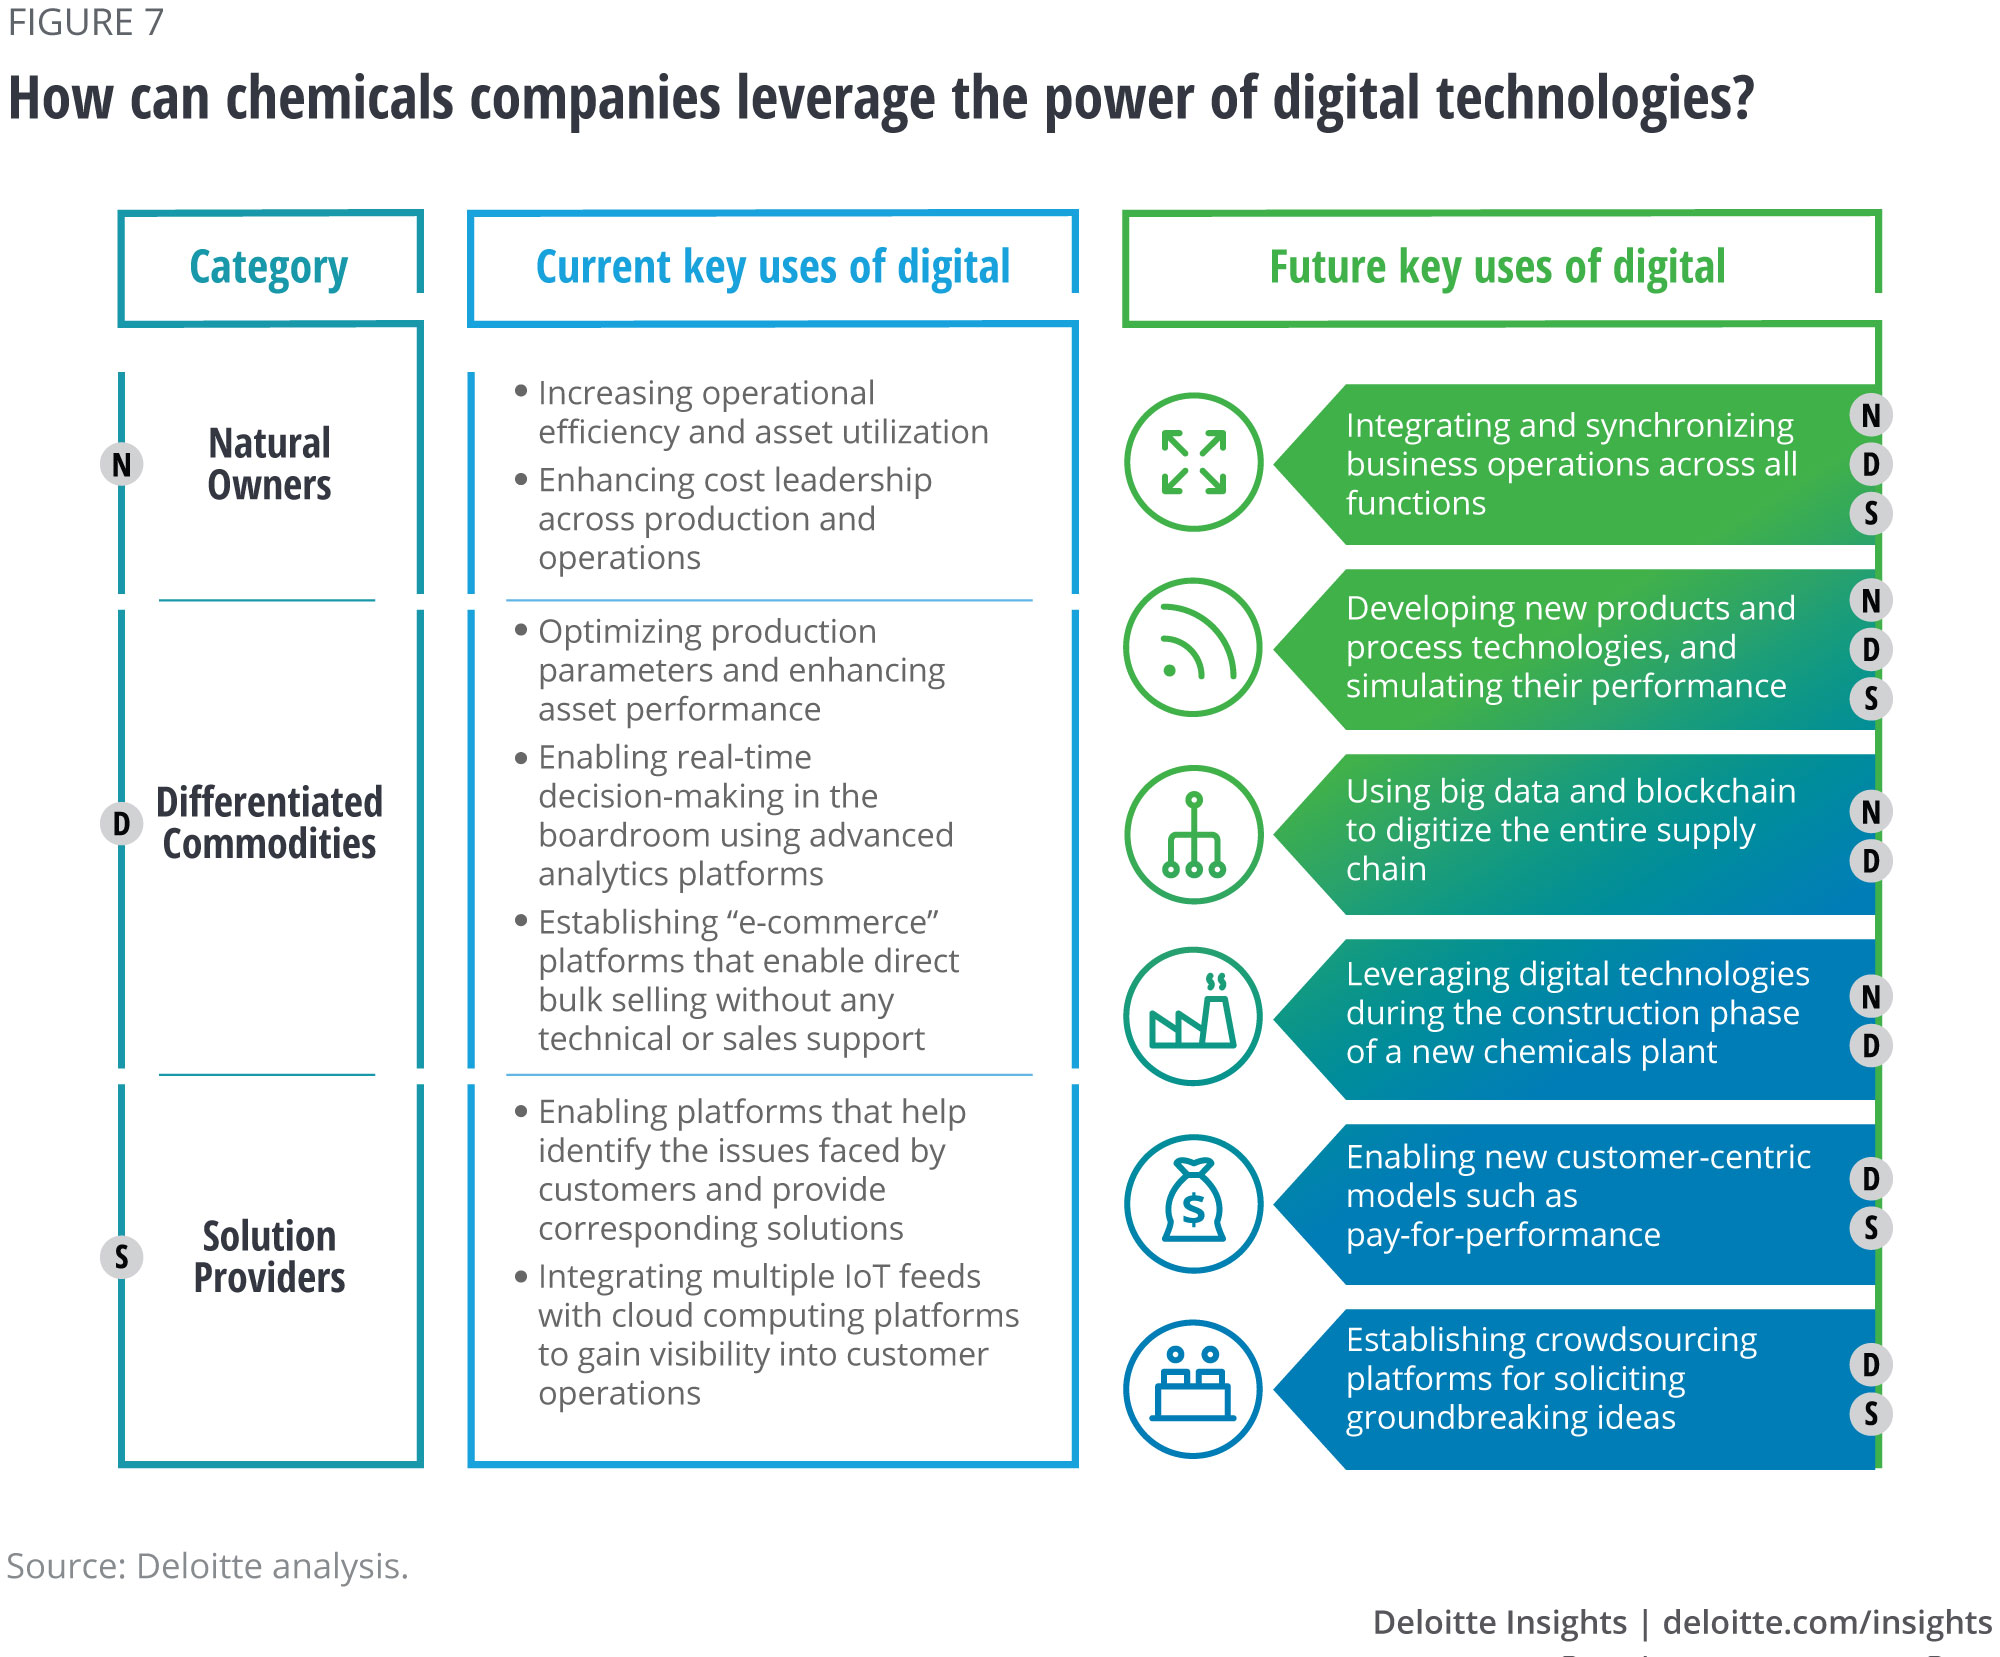 How can chemicals companies leverage the power of digital technologies?